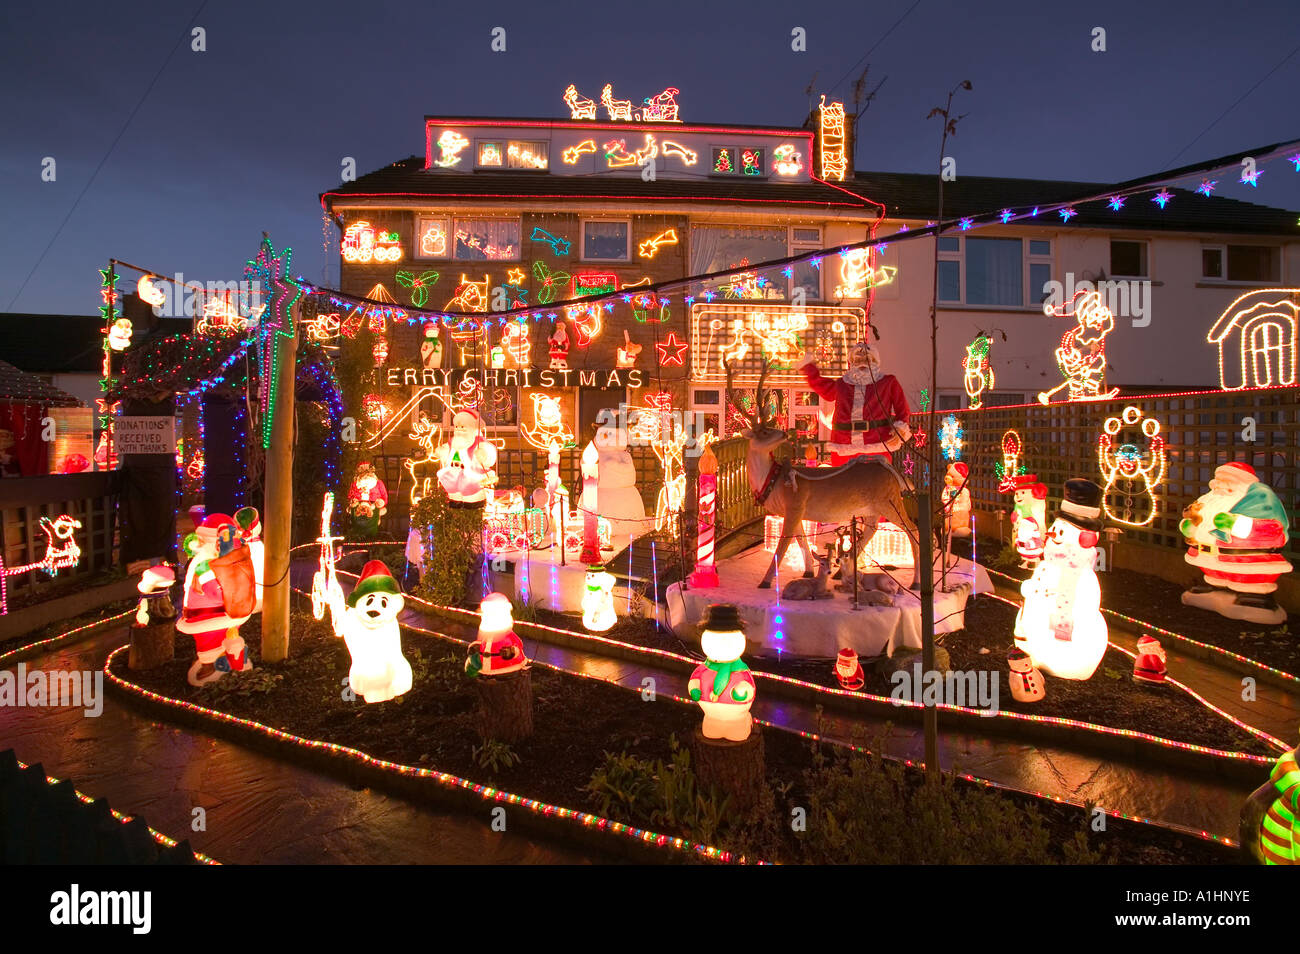 sugarloaflightinghaschanged christmas decor now is lights commercial sugarloaf lighting led decorations